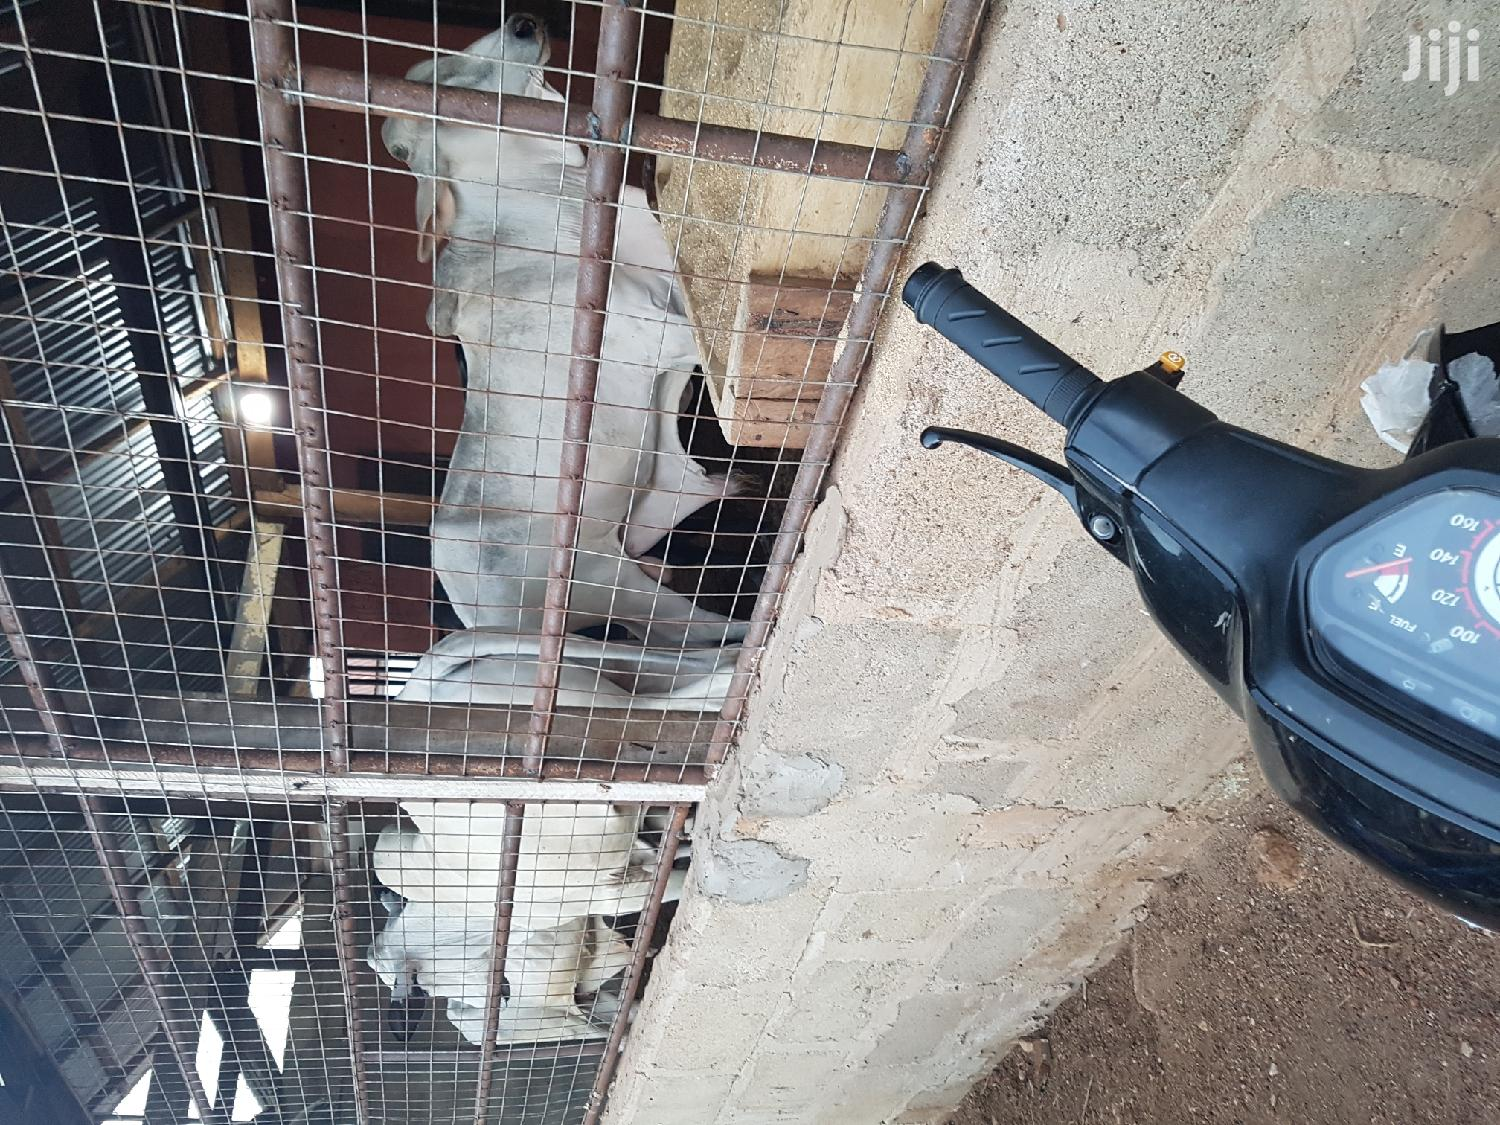 Cows And Goats At Cull Price | Livestock & Poultry for sale in Tamale Municipal, Northern Region, Ghana